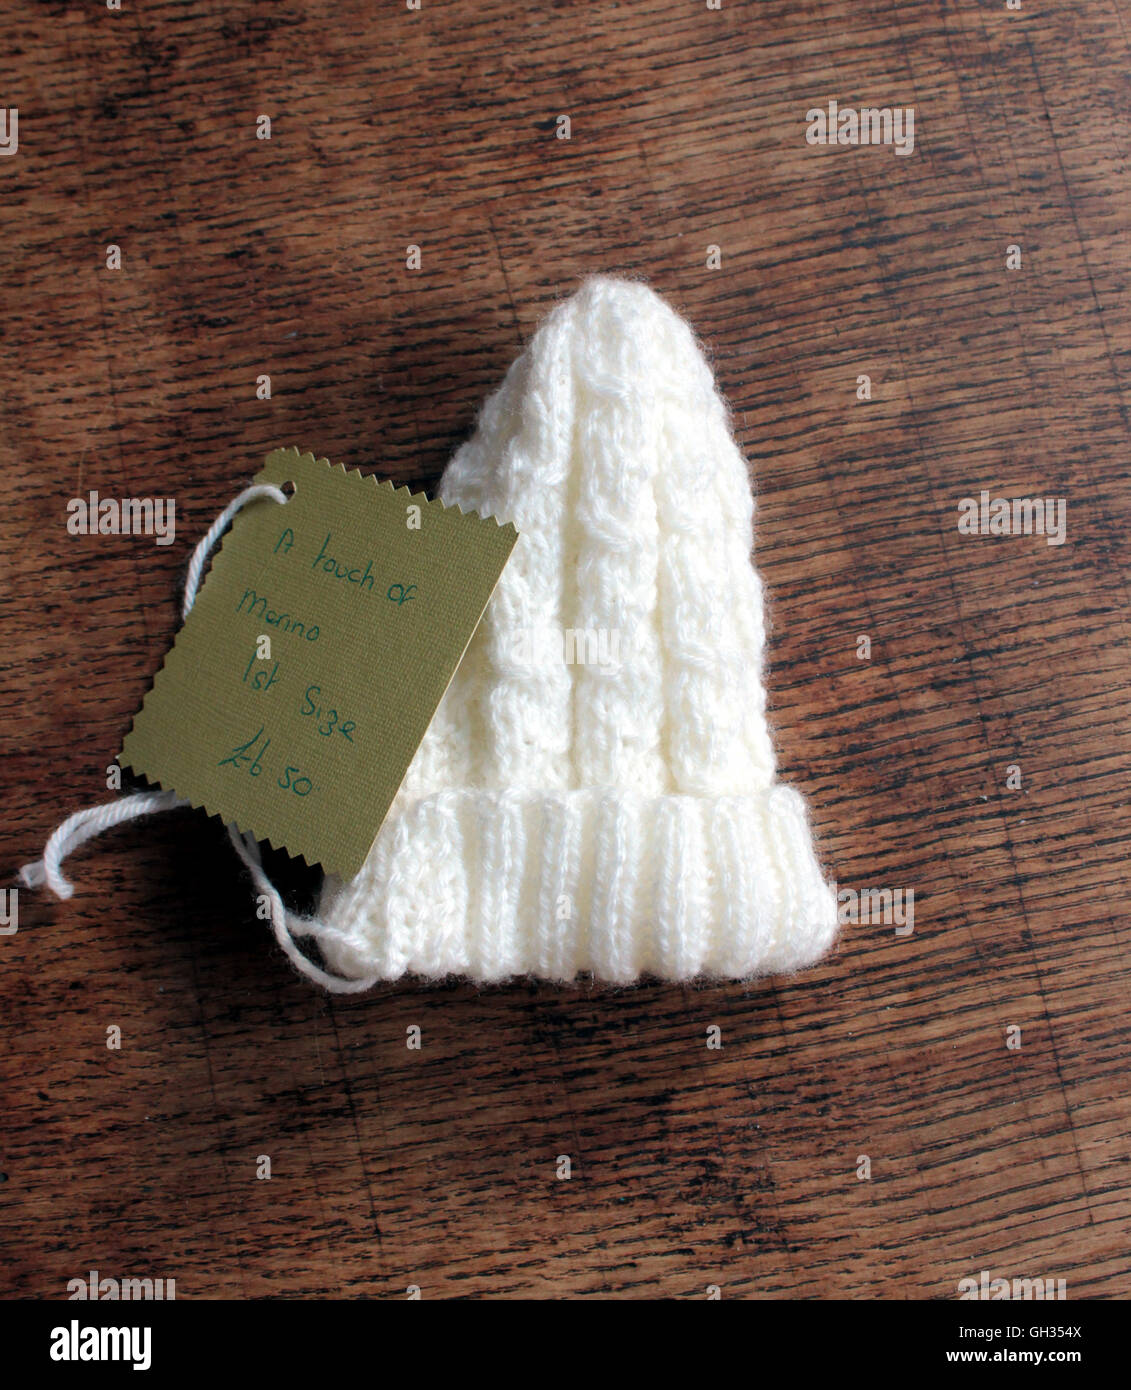 A baby's hat hand knitted from a yarn with a touch of merino wool in the mix. - Stock Image